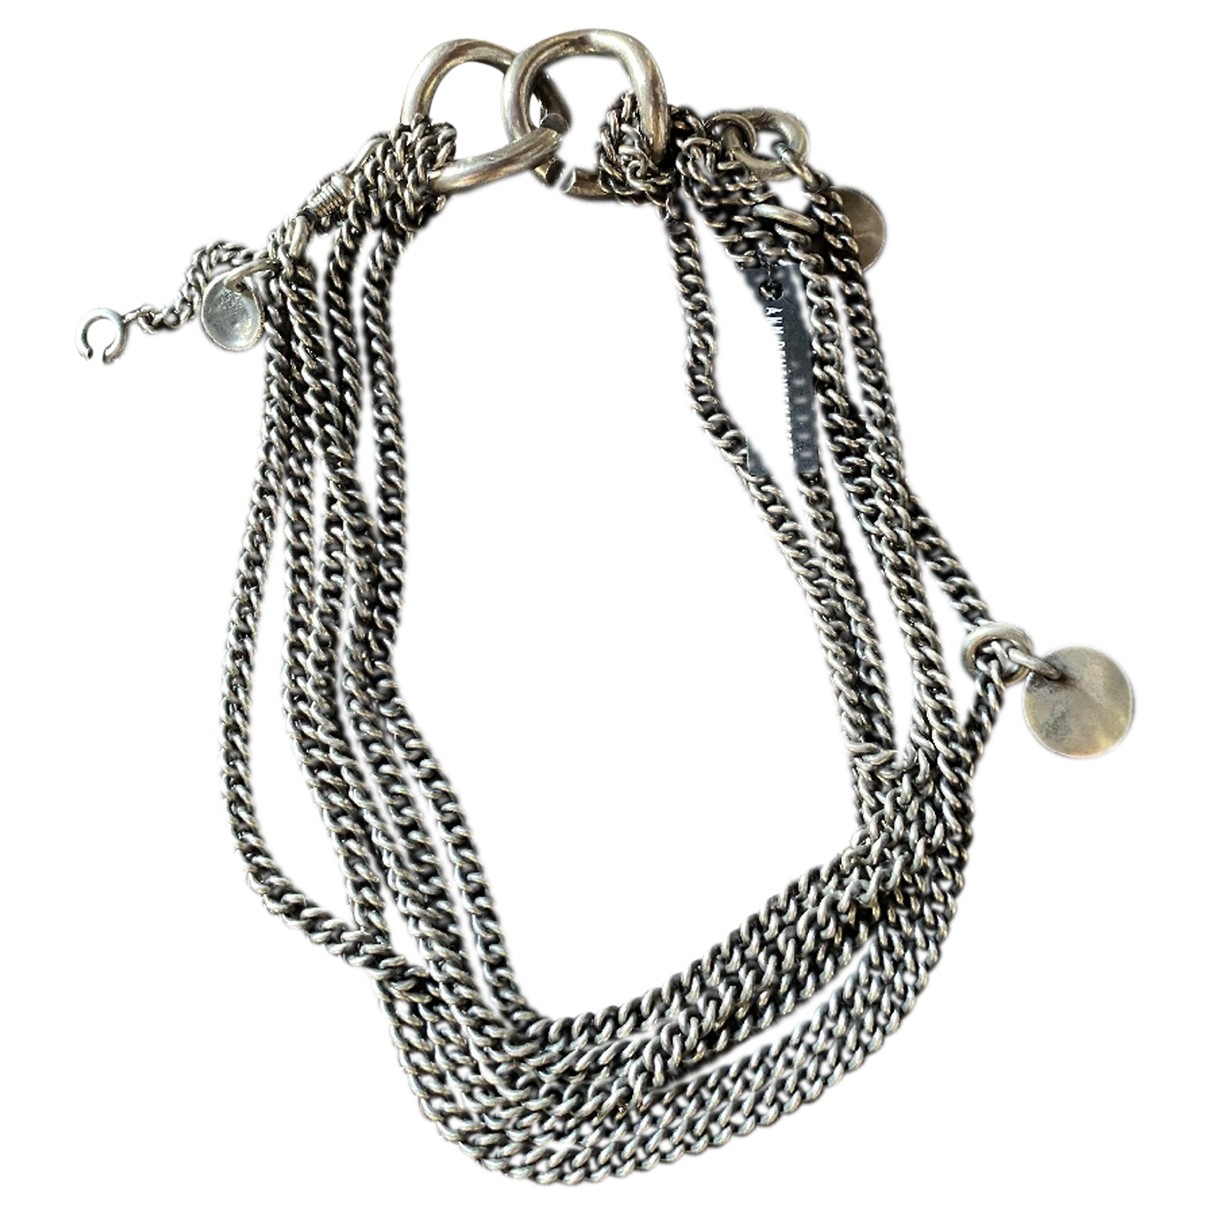 Ann Demeulemeester N Silver Silver necklace for Women N